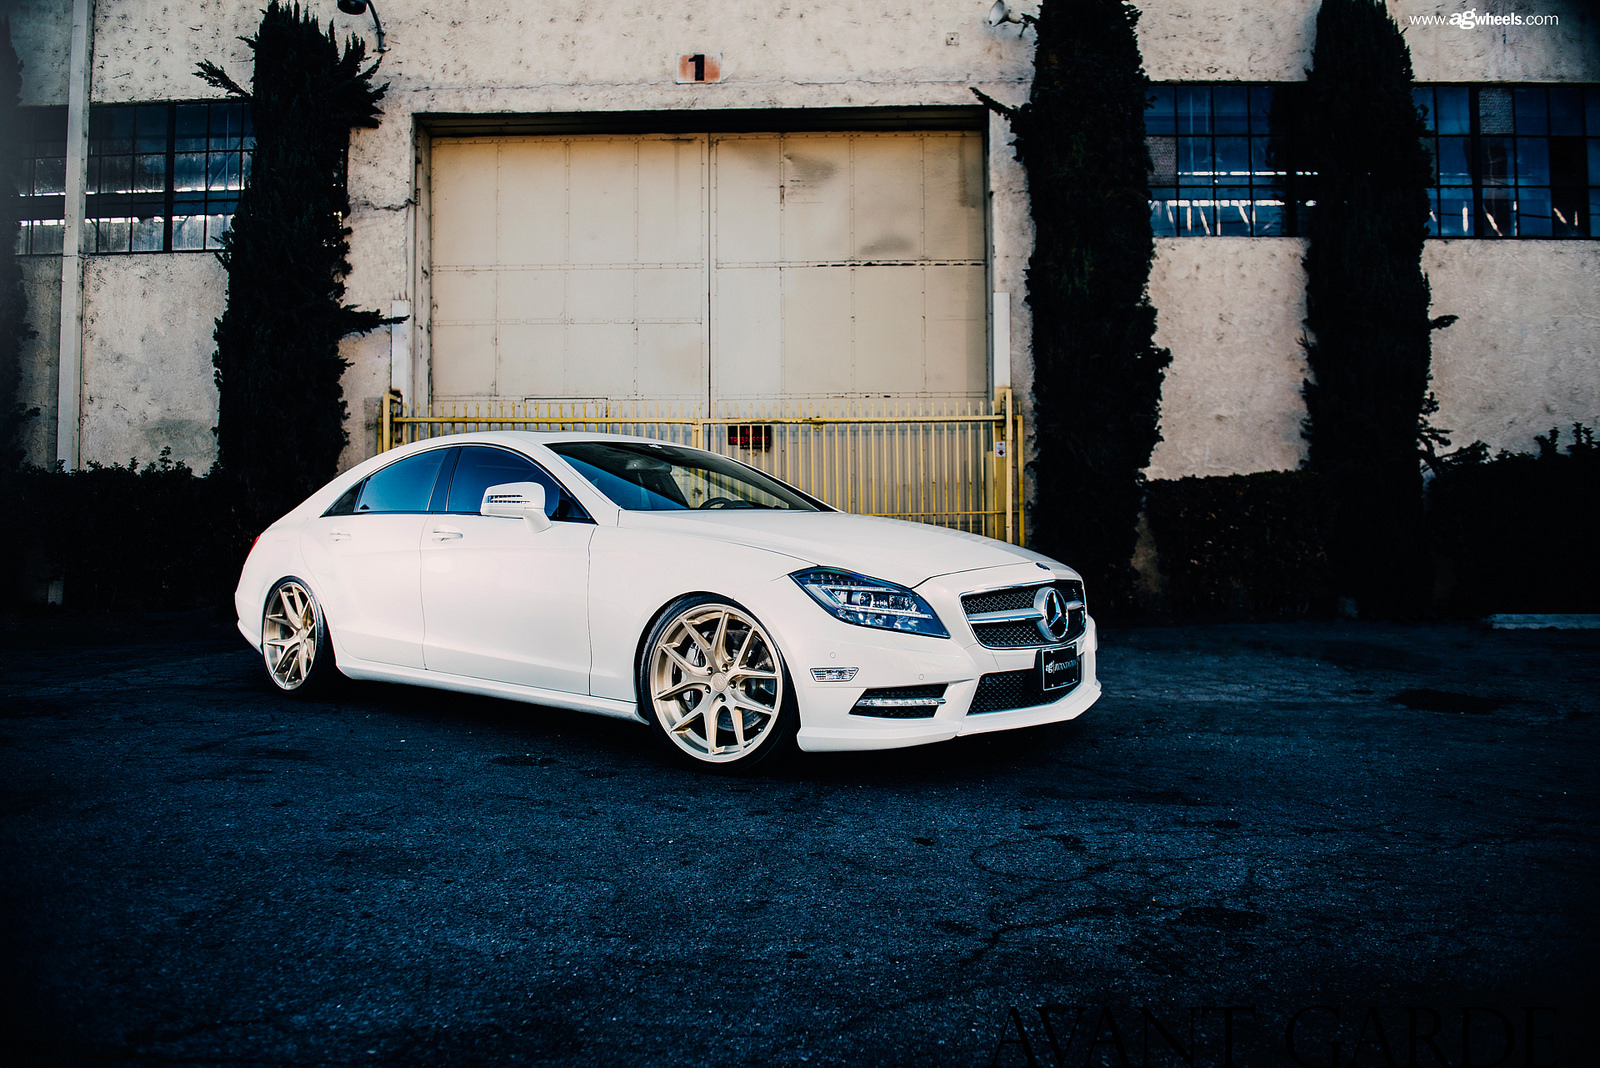 MPPSOCIETY Modified Cars yuya_agwheels Mercedes Benz CLS550 Avant Garde Wheels 01